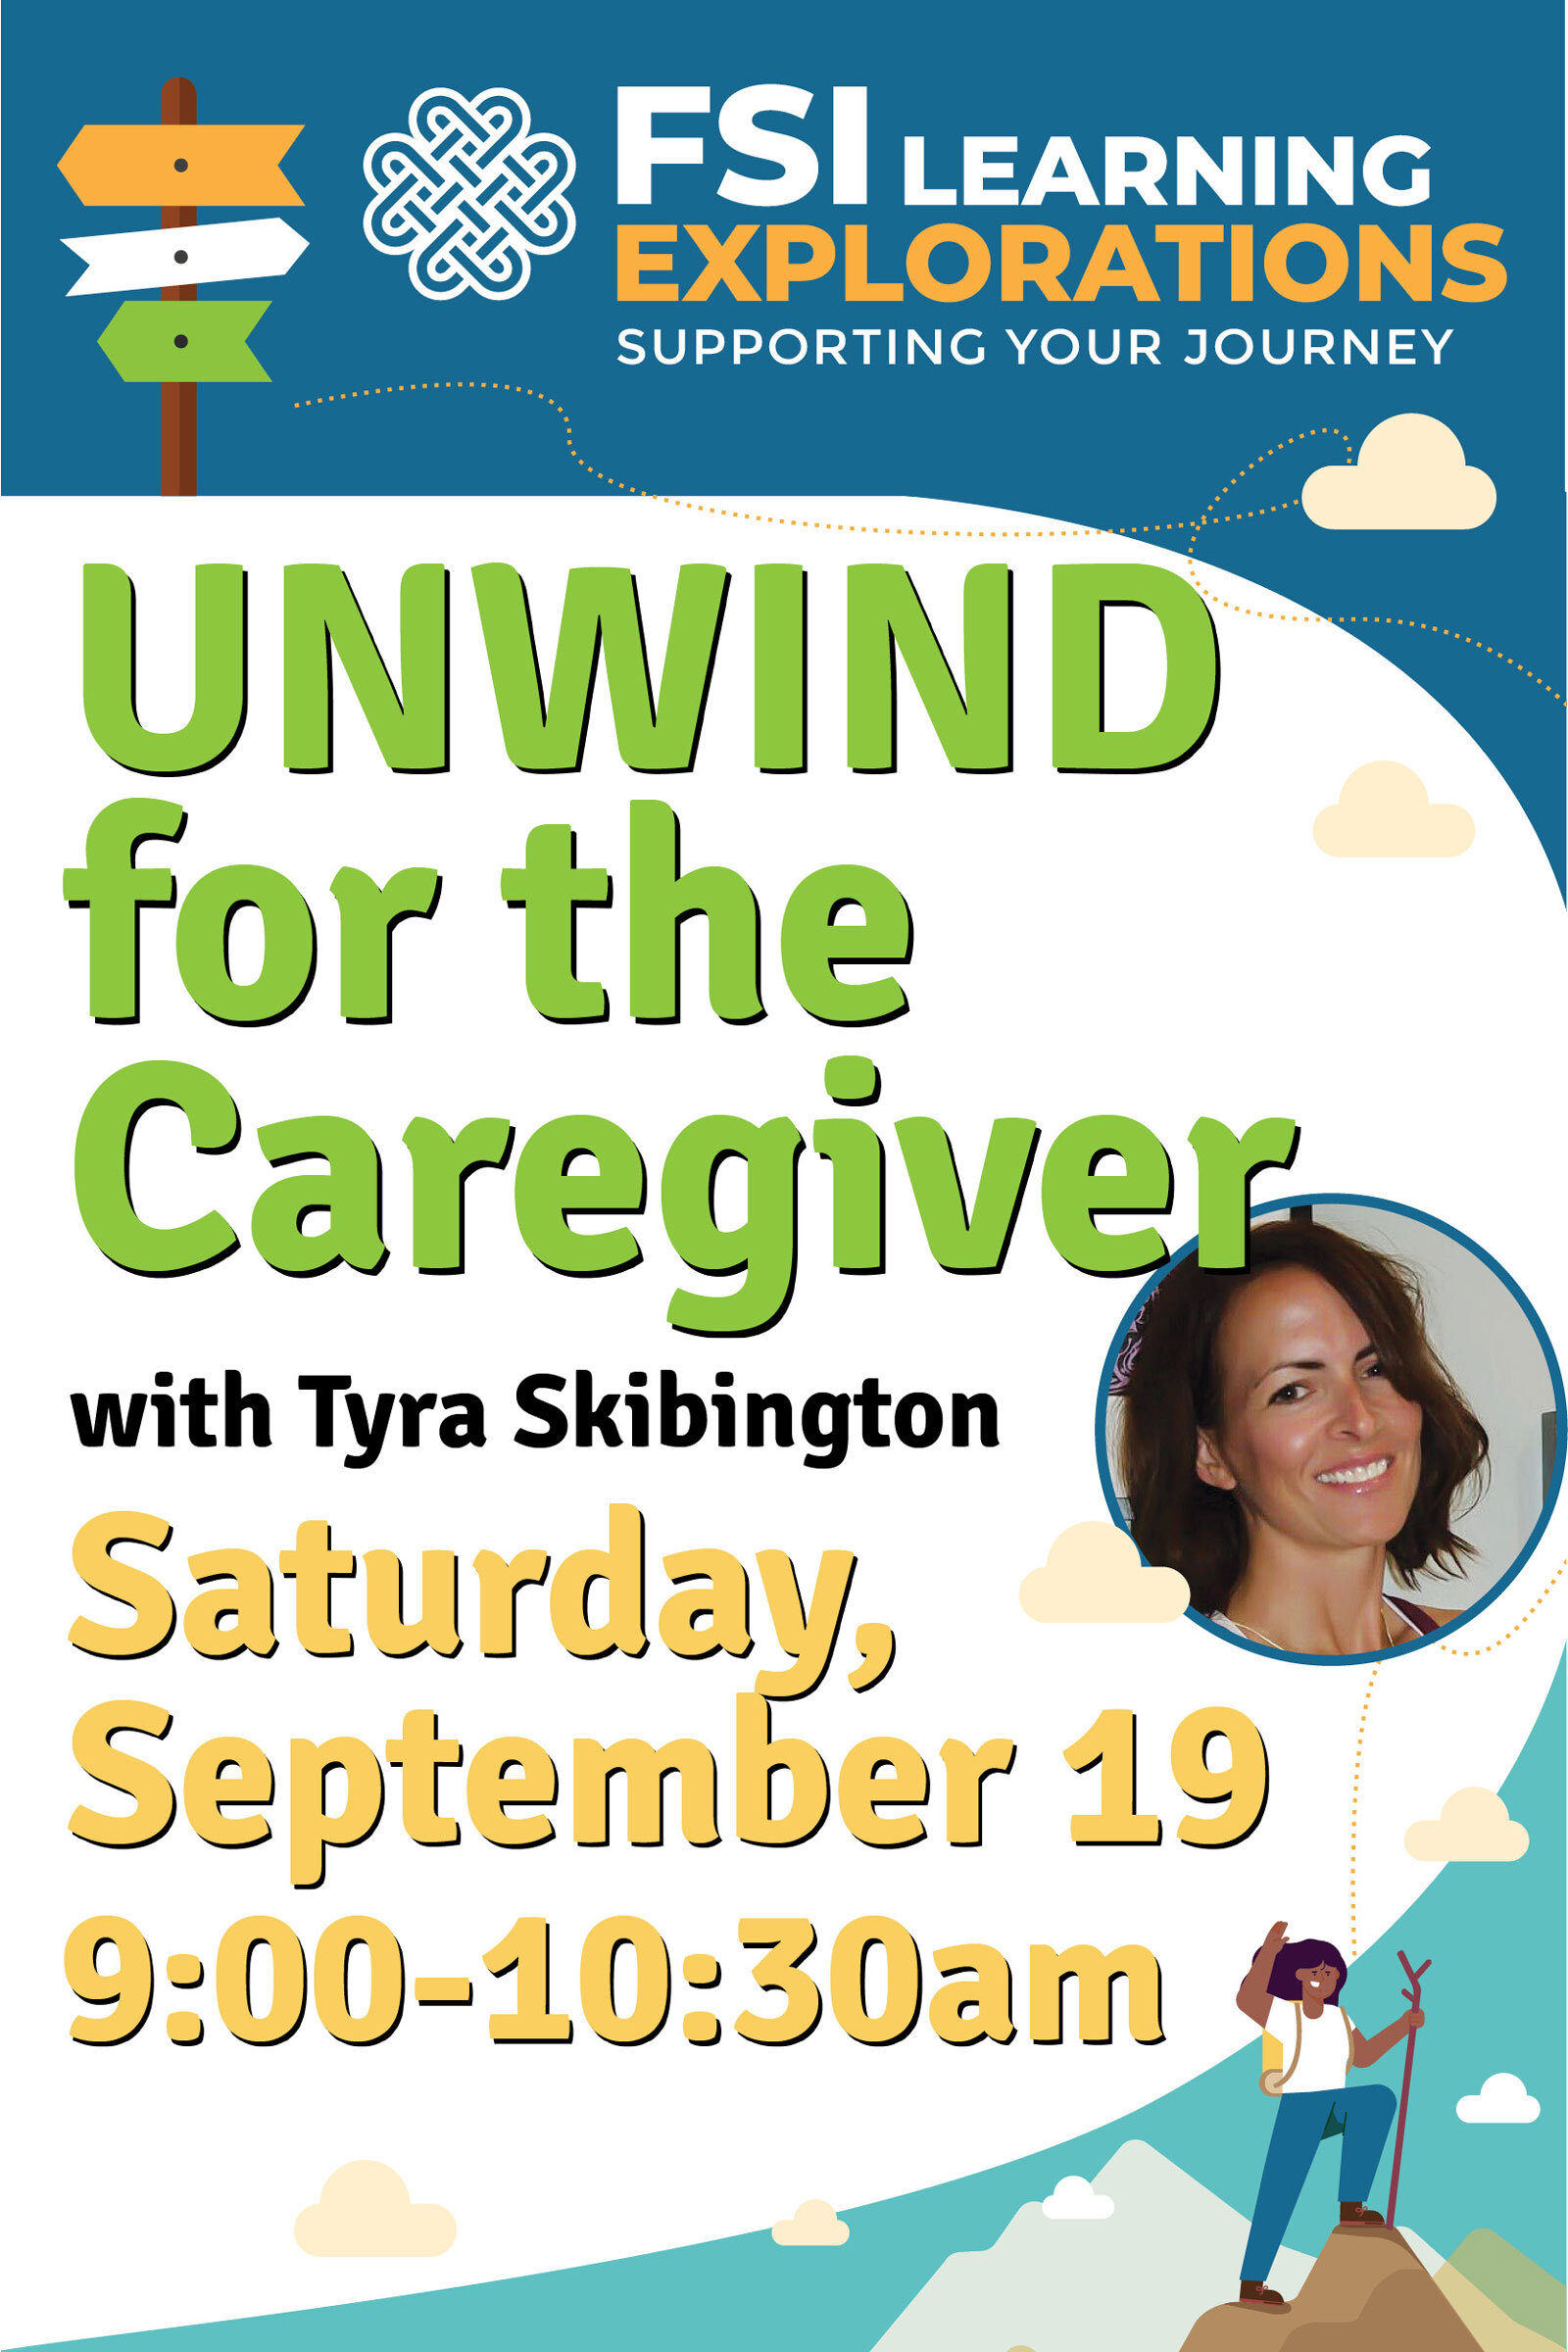 FSI Learning Explorations - UNWIND for the Caregiver